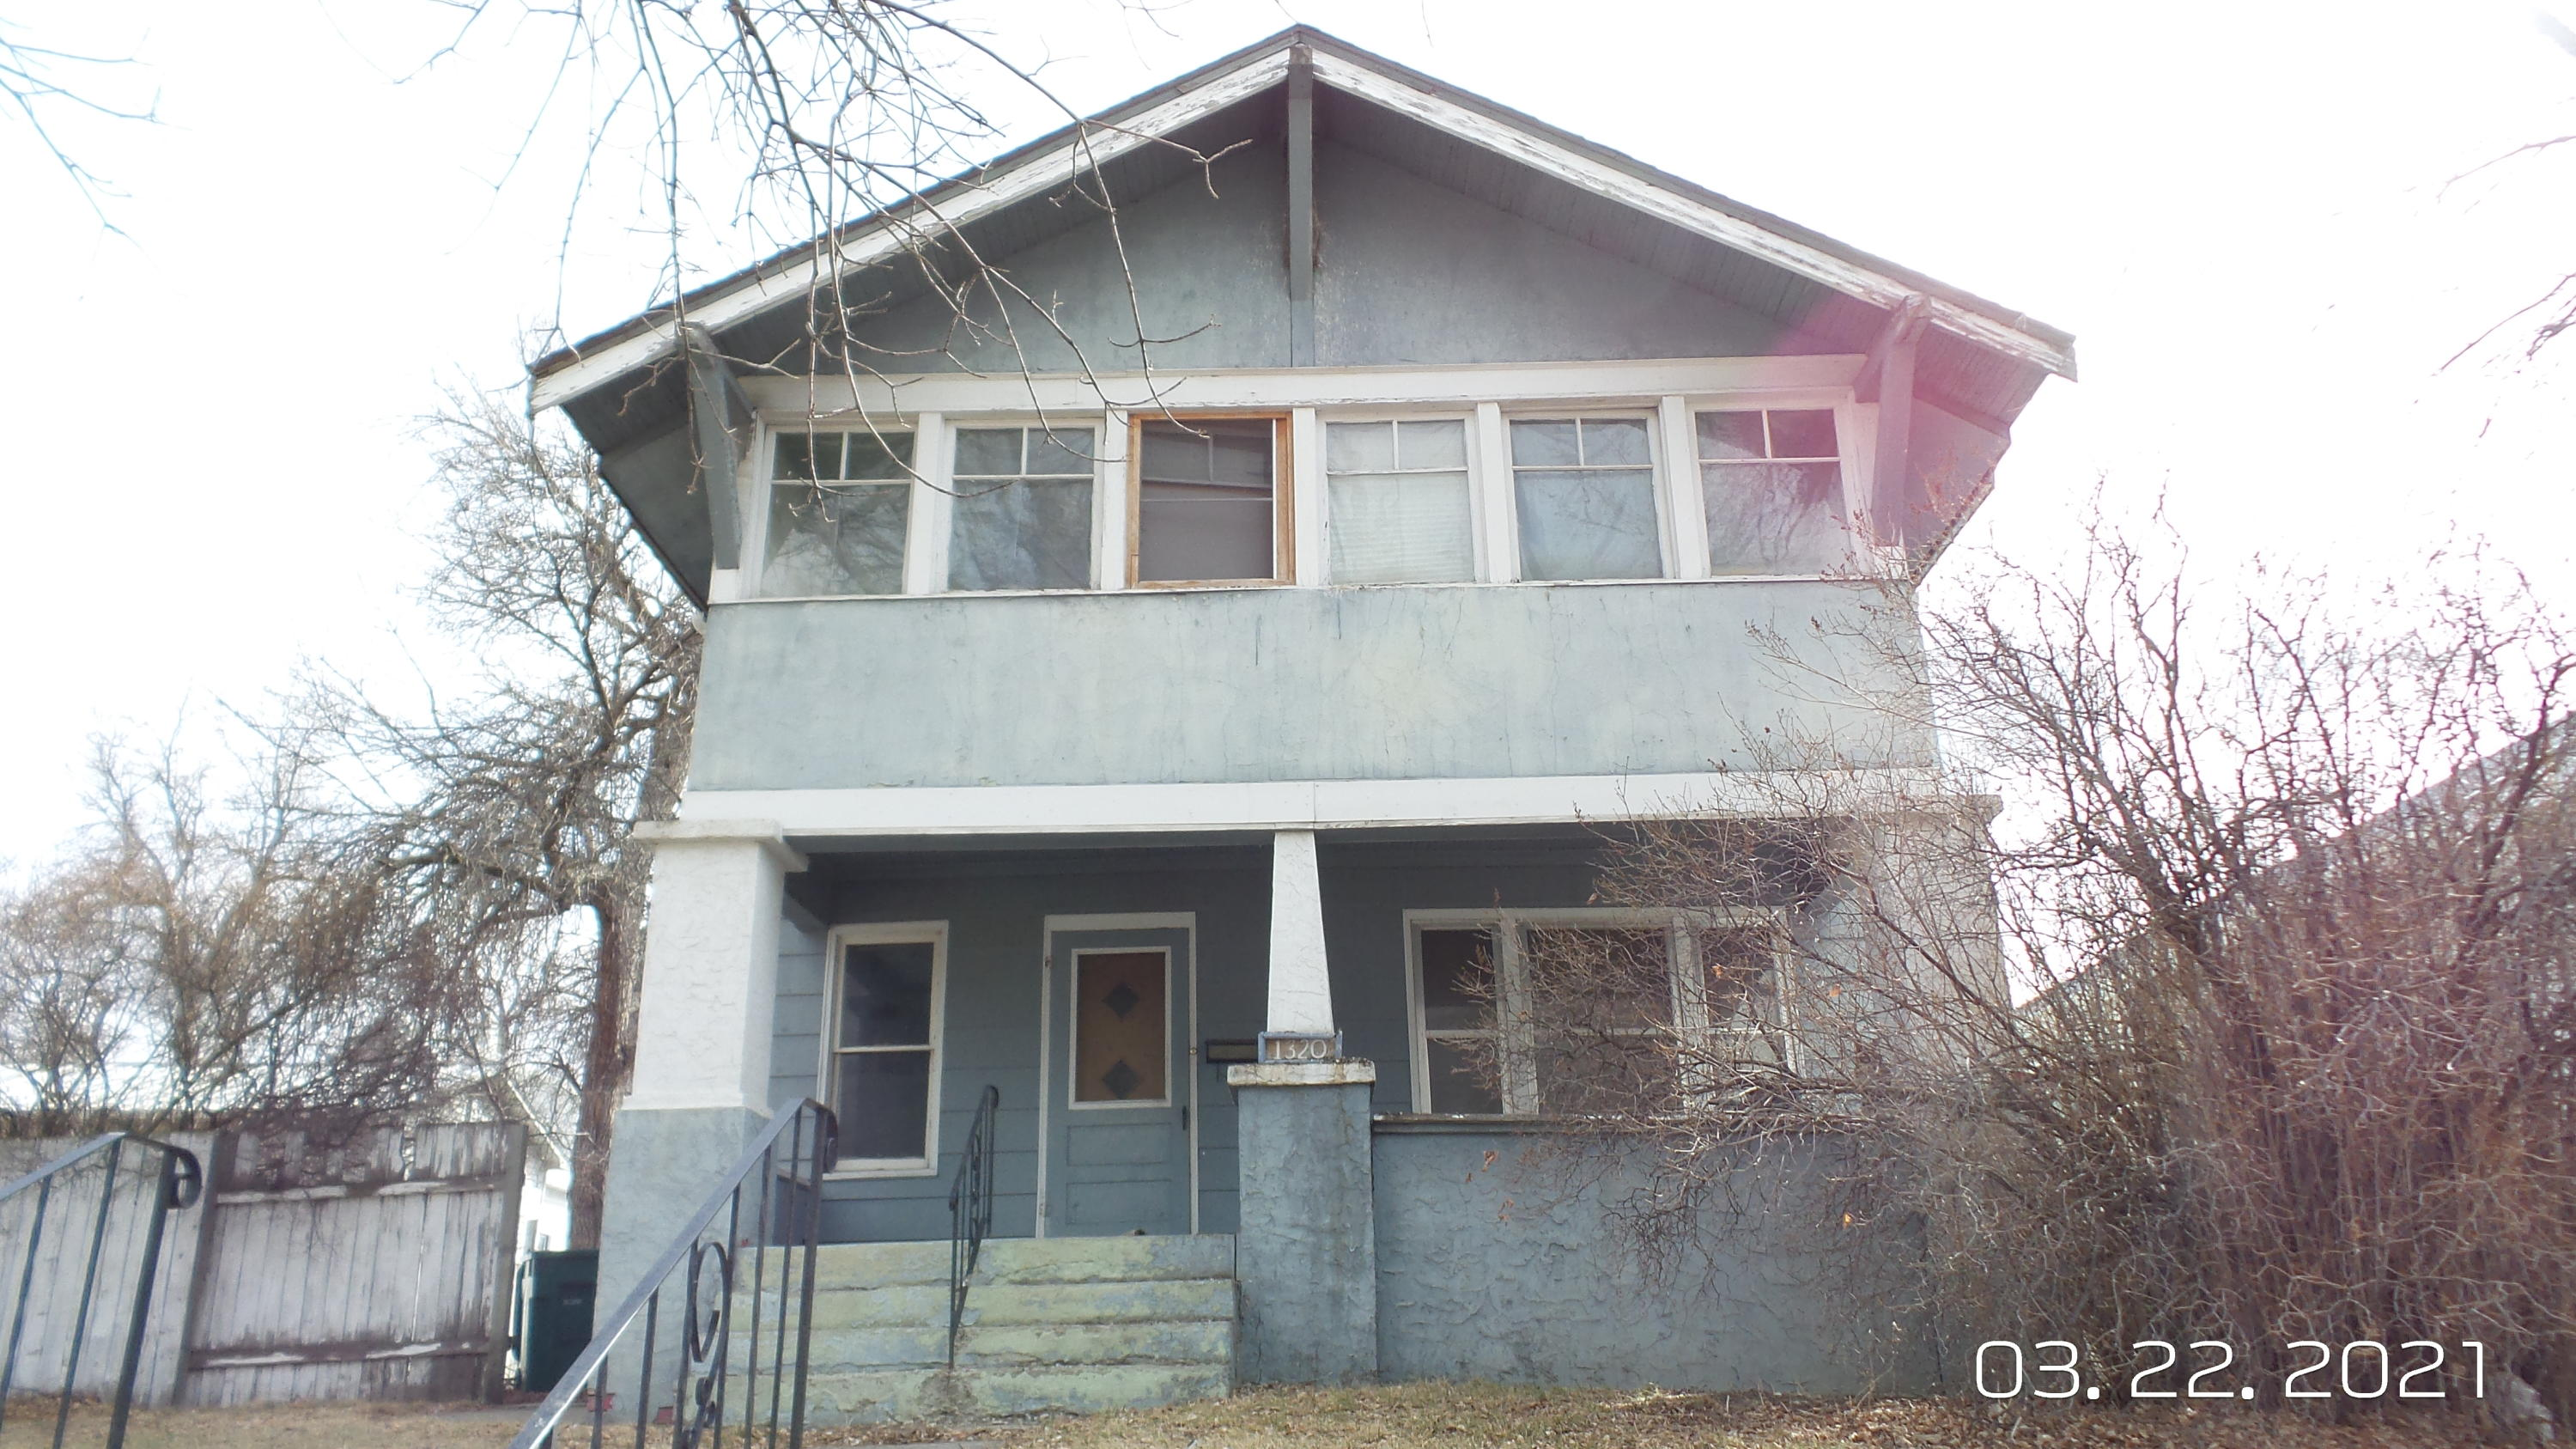 THIS IS A FIXER UPPER WITH LOTS OF POTENTIAL IN THIS LARGE 4 BEDROOMS AND 1.50 BATHROOMS LARGE LIVING ROOM AND DINING ROOM AND HUGE KITCHEN HOUSE HAS A NEW ROOF AND NEW FOUNDATION SUPPORTS IN THE BASEMENT AND IS READY FOR A NEW OWNER TO COMPLETE THIS PROJECT FOR THEMSELVES OR INVESTMENT PROPERTY HOME IS BEING SOLD AS IS WHERE IS CALL CHARLIE 406-788-3362 OR YOUR REAL ESTATE PROFESSIONAL BRING FLASHLIGHT TO VIEW BASEMENT OR HOME NO UTILITIES ARE ON